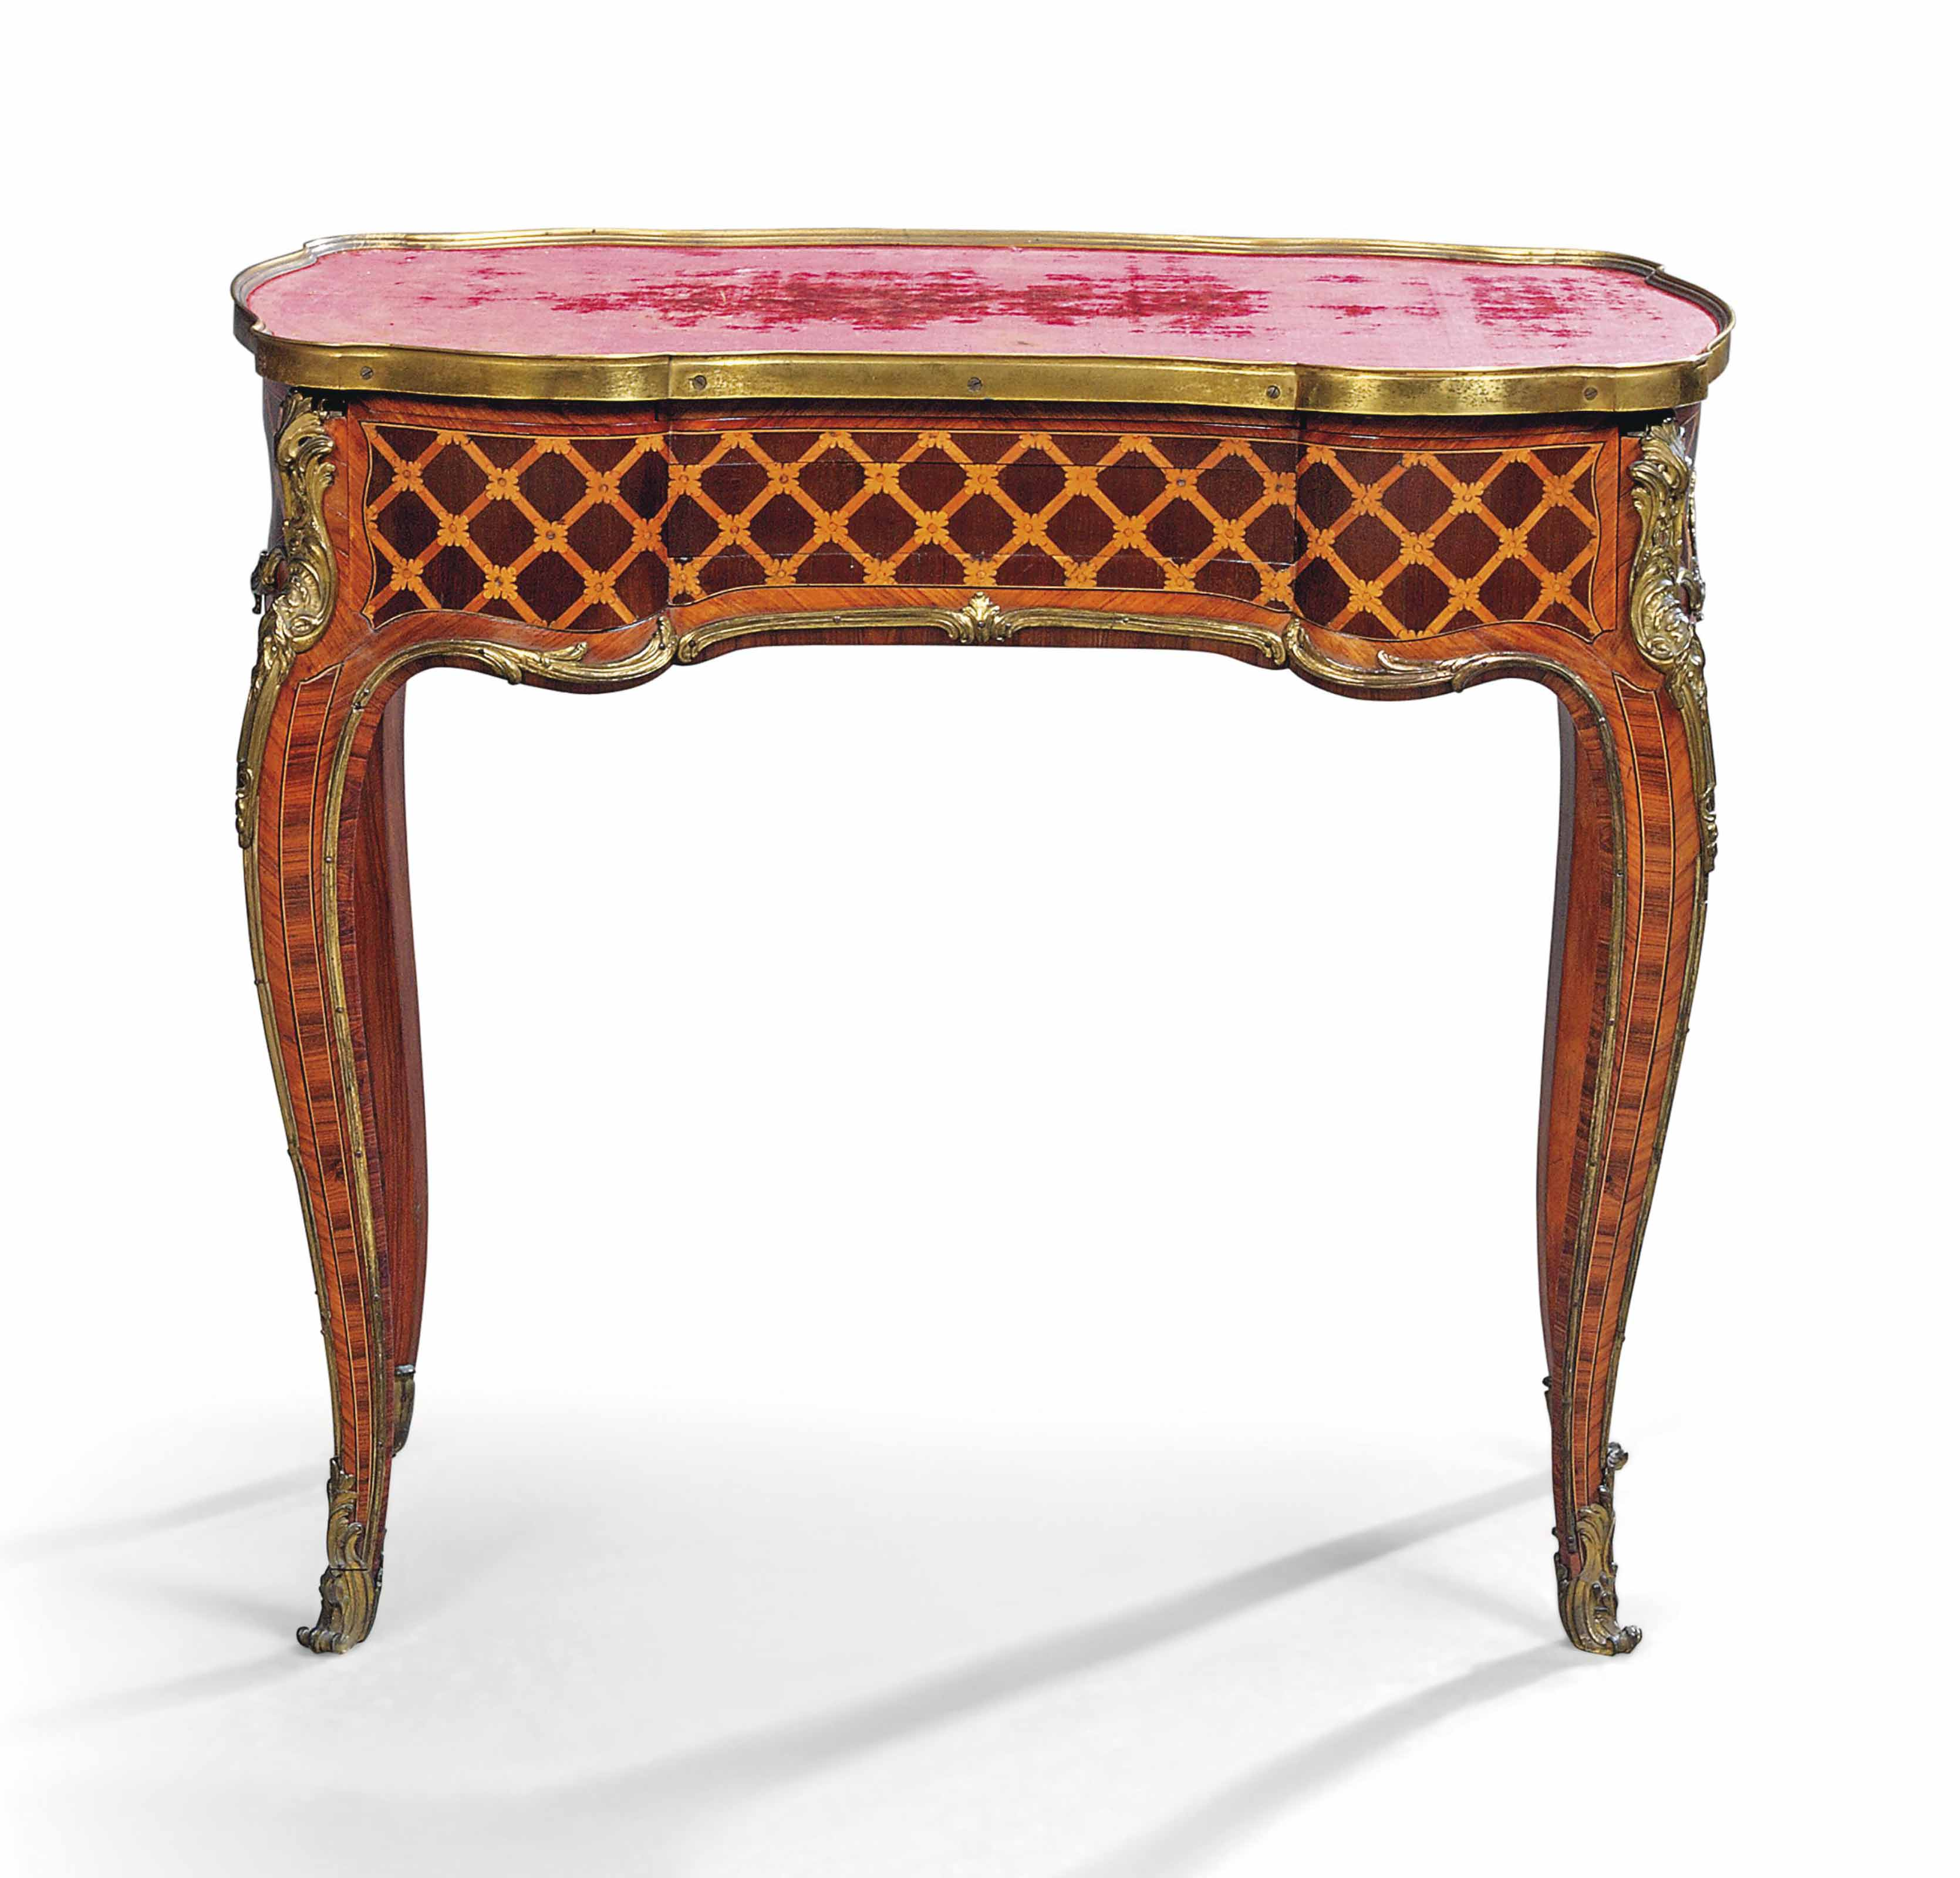 A LOUIS XV ORMOLU-MOUNTED AMARANTH, KINGWOOD AND TULIPWOOD PARQUETRY TABLE A ECRIRE